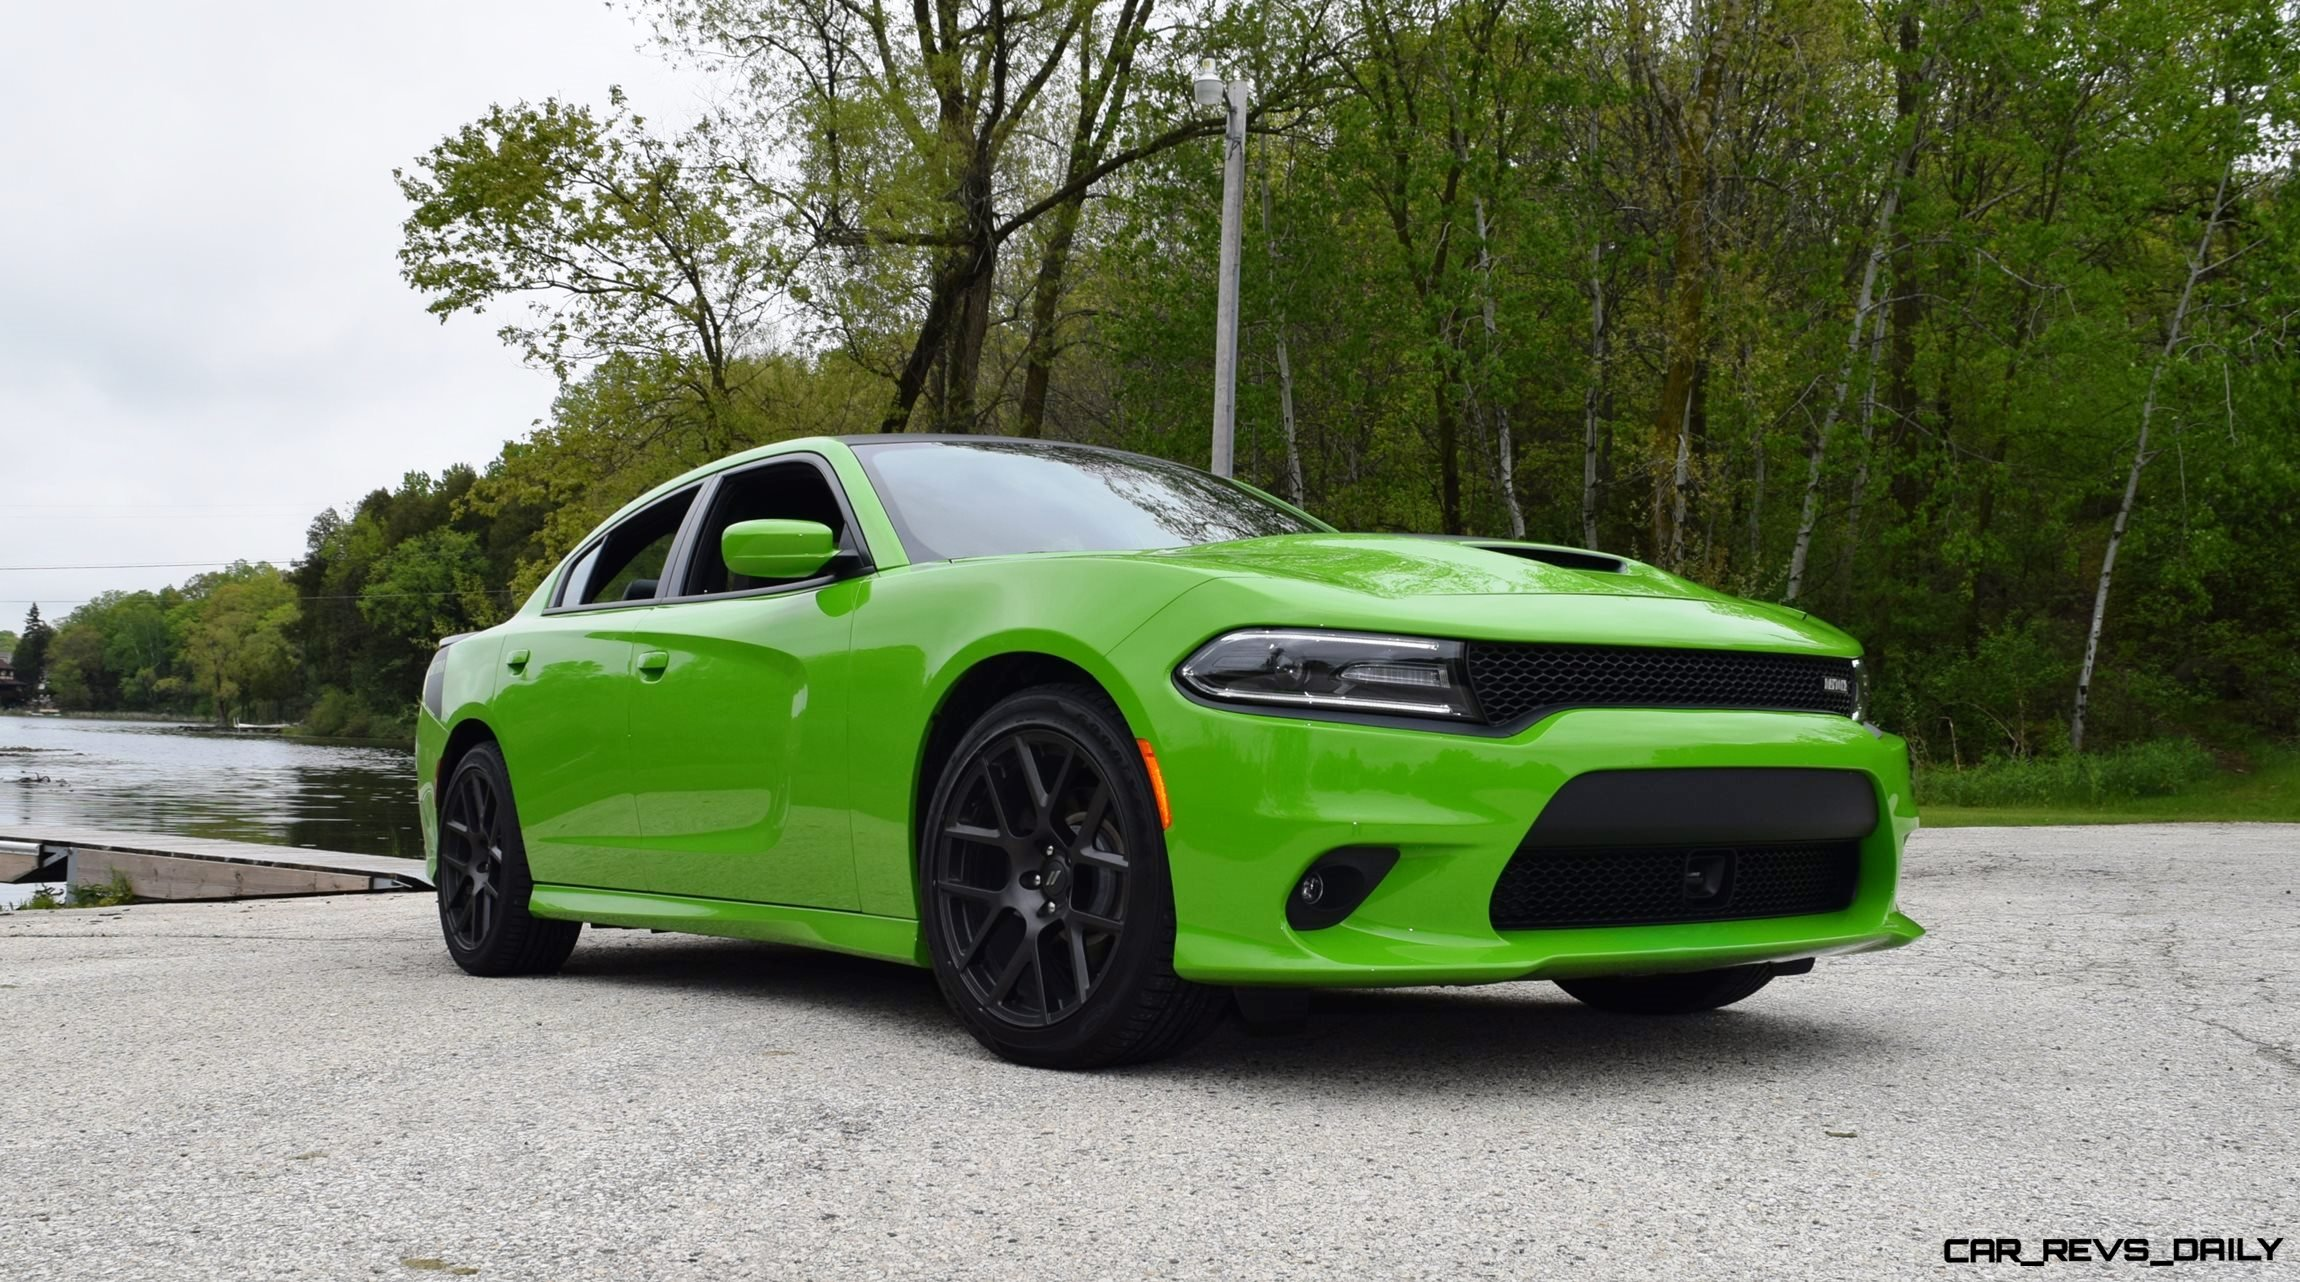 2017 Dodge Charger DAYTONA 6